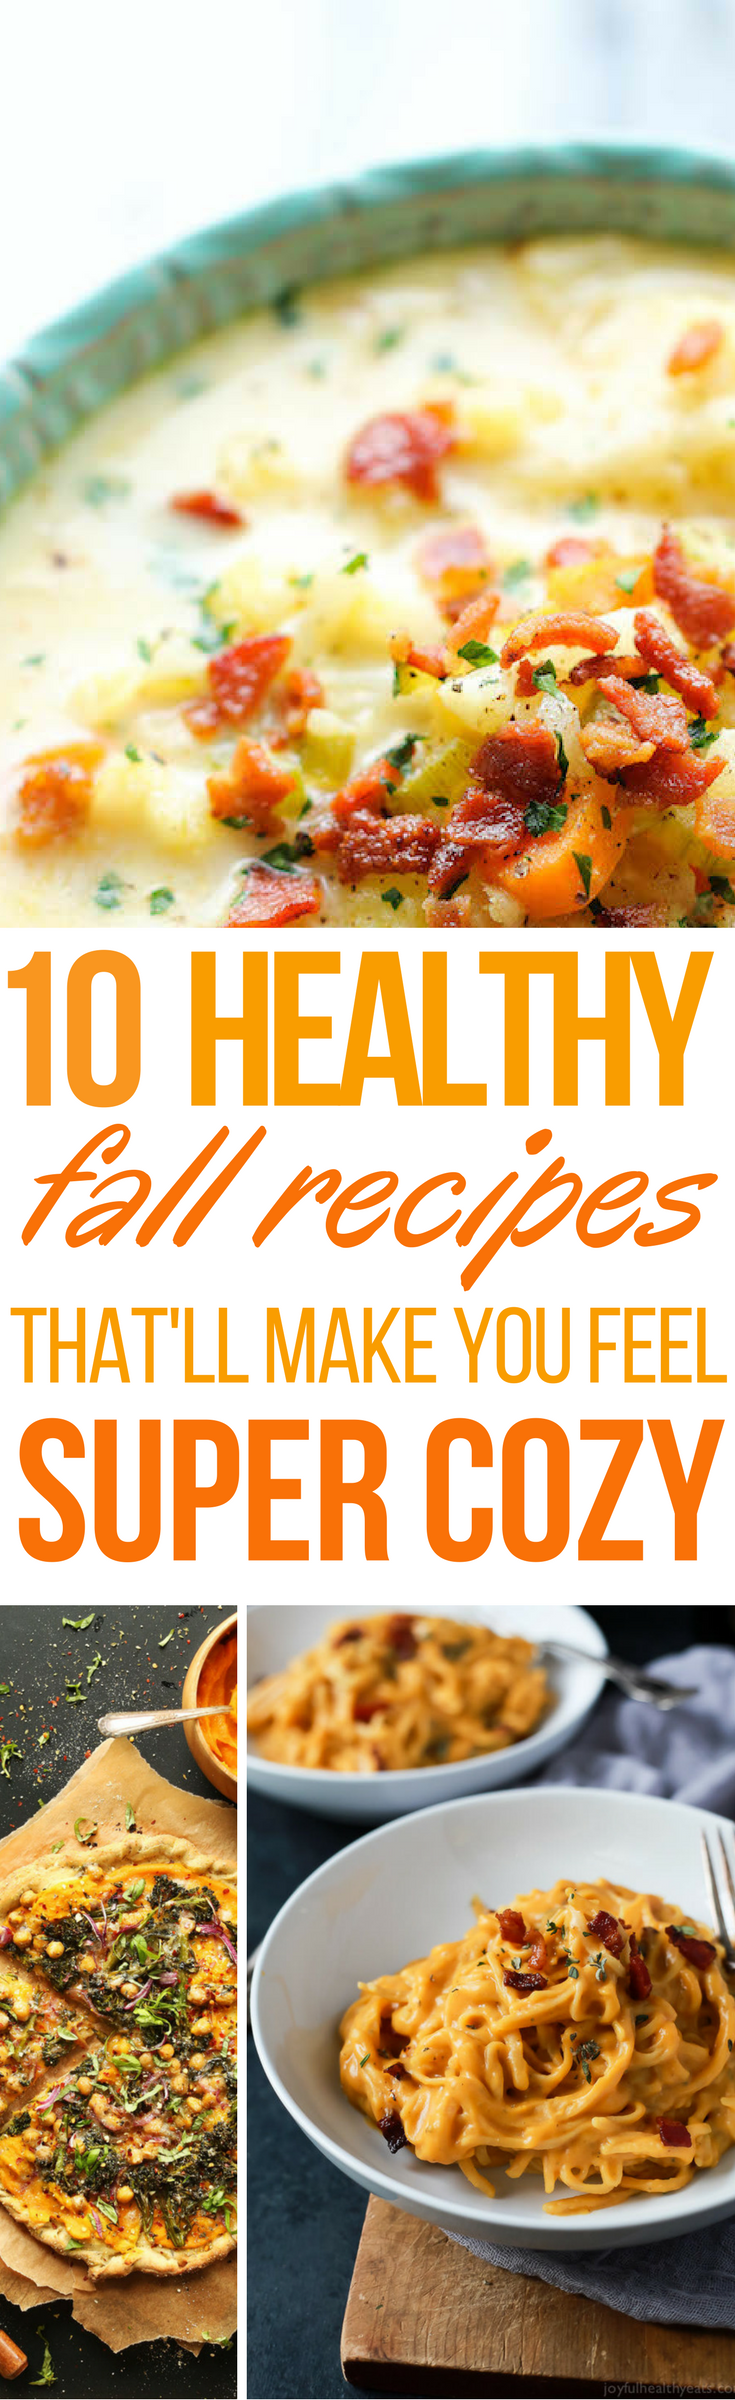 10 Healthy But Amazing Fall Recipes That Actually Feel Like You're Cheating #fallrecipesdinner